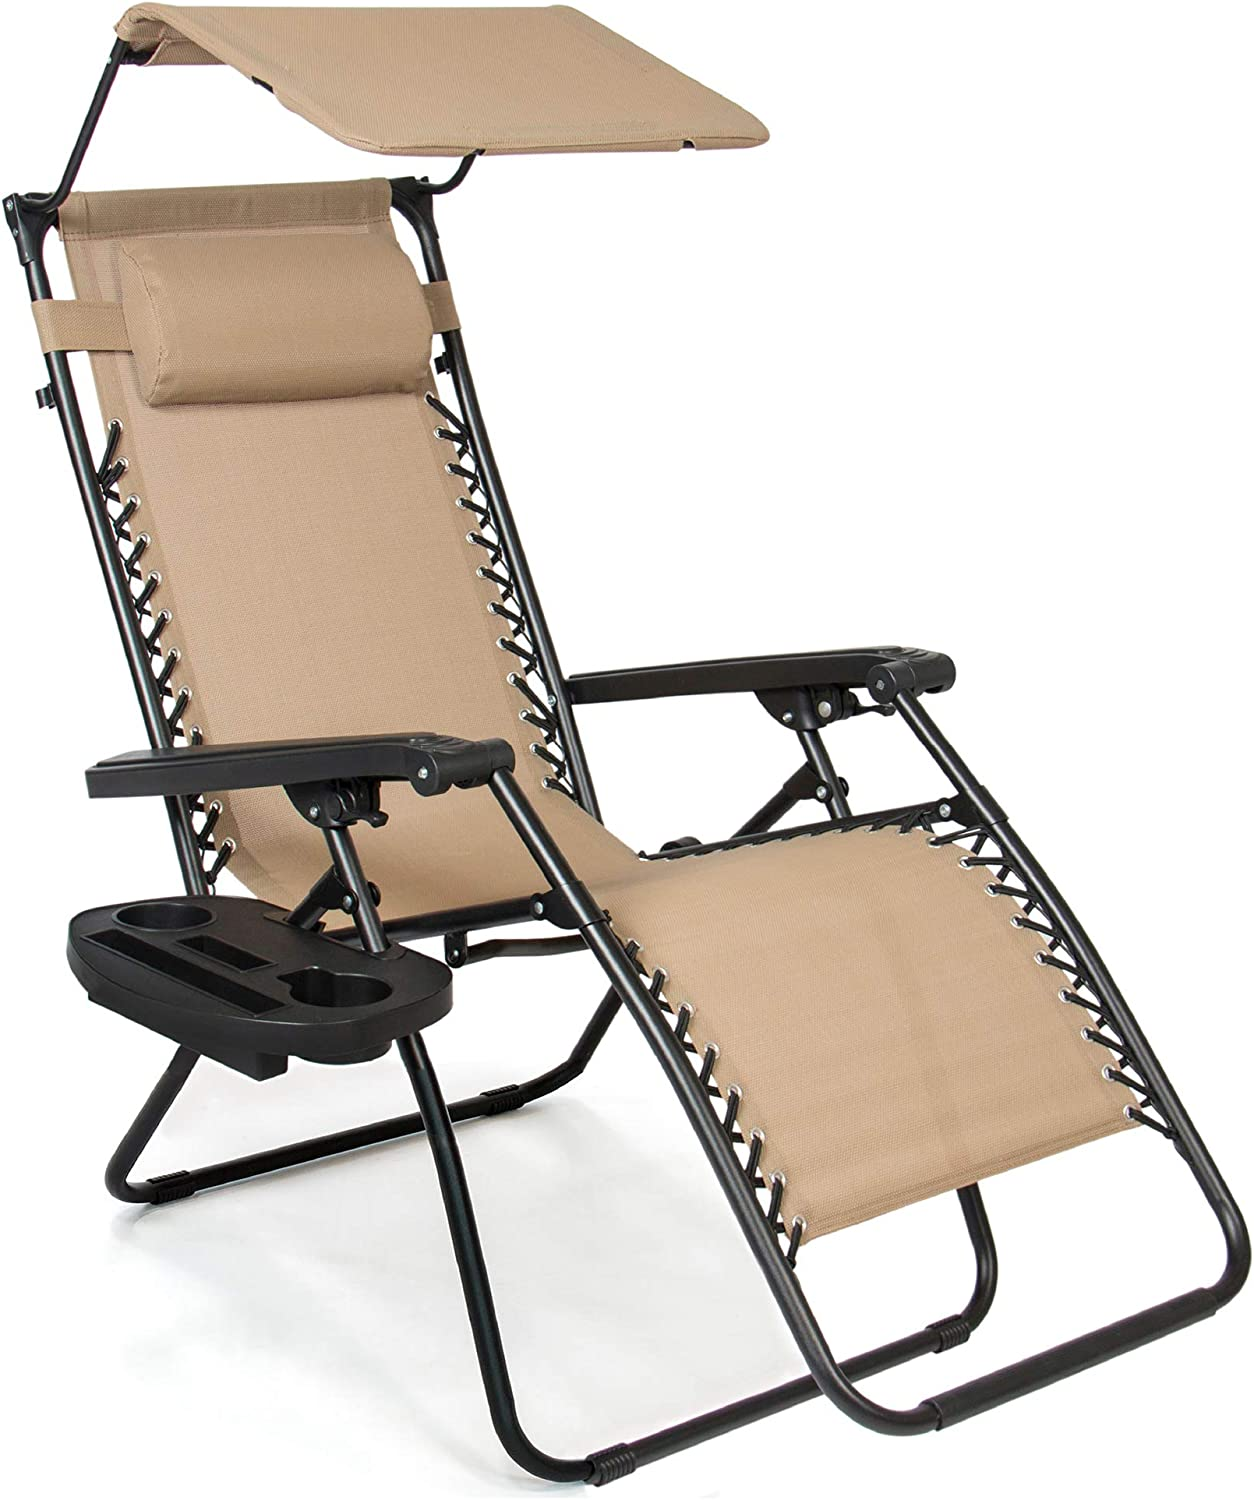 Best Choice Products SKY2337 Zero Gravity Chairs With Canopy Sunshade